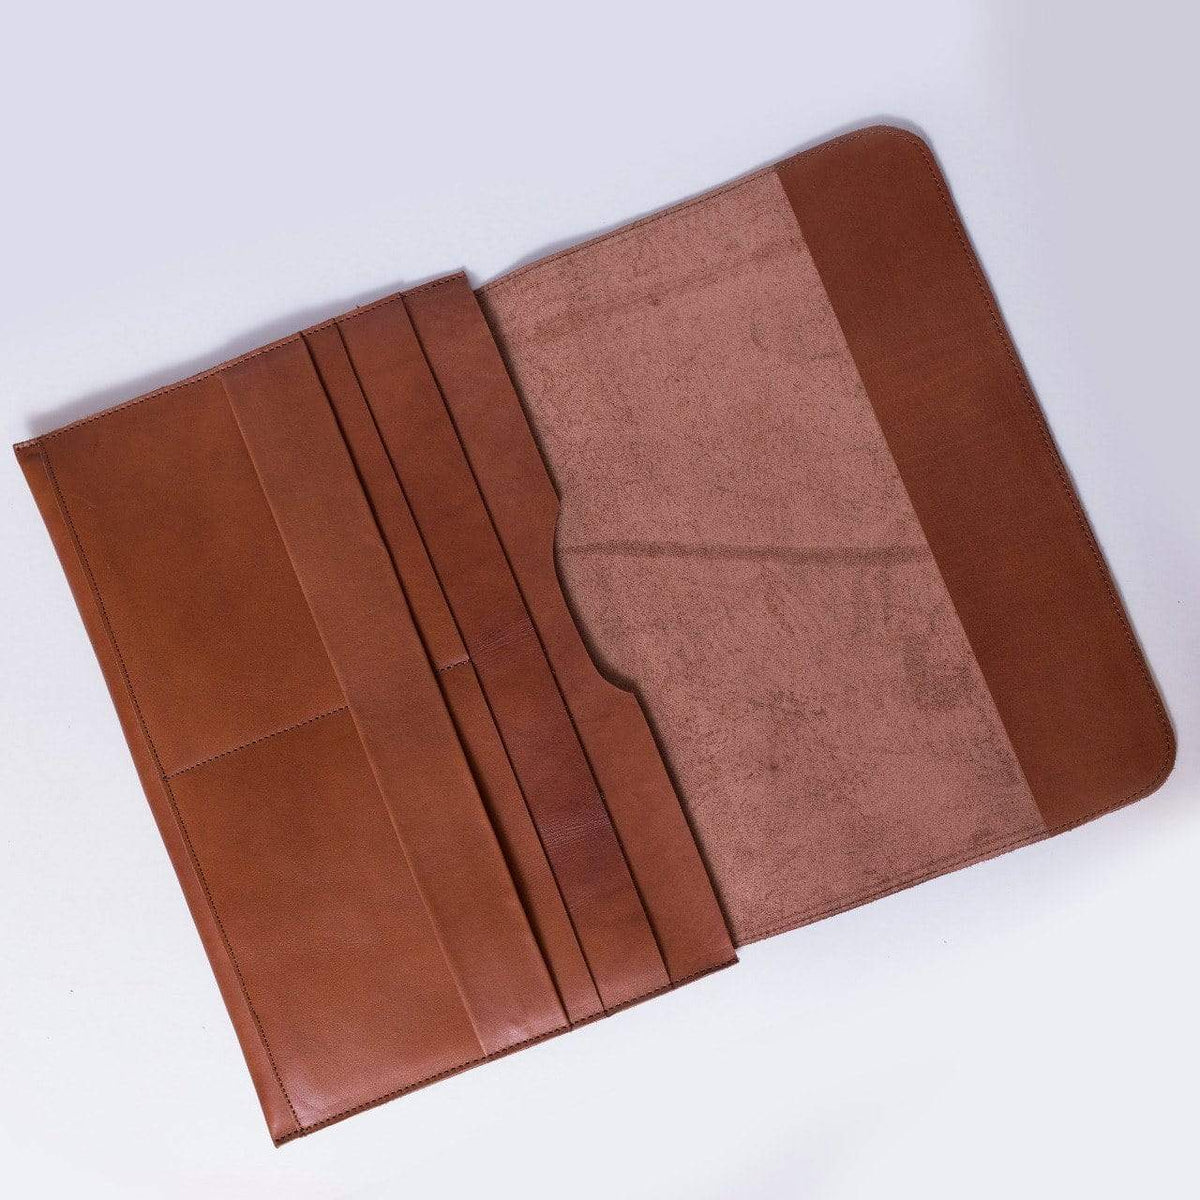 leather Genuine Leather Cognac Hand Crafted Mac Book Sleeve